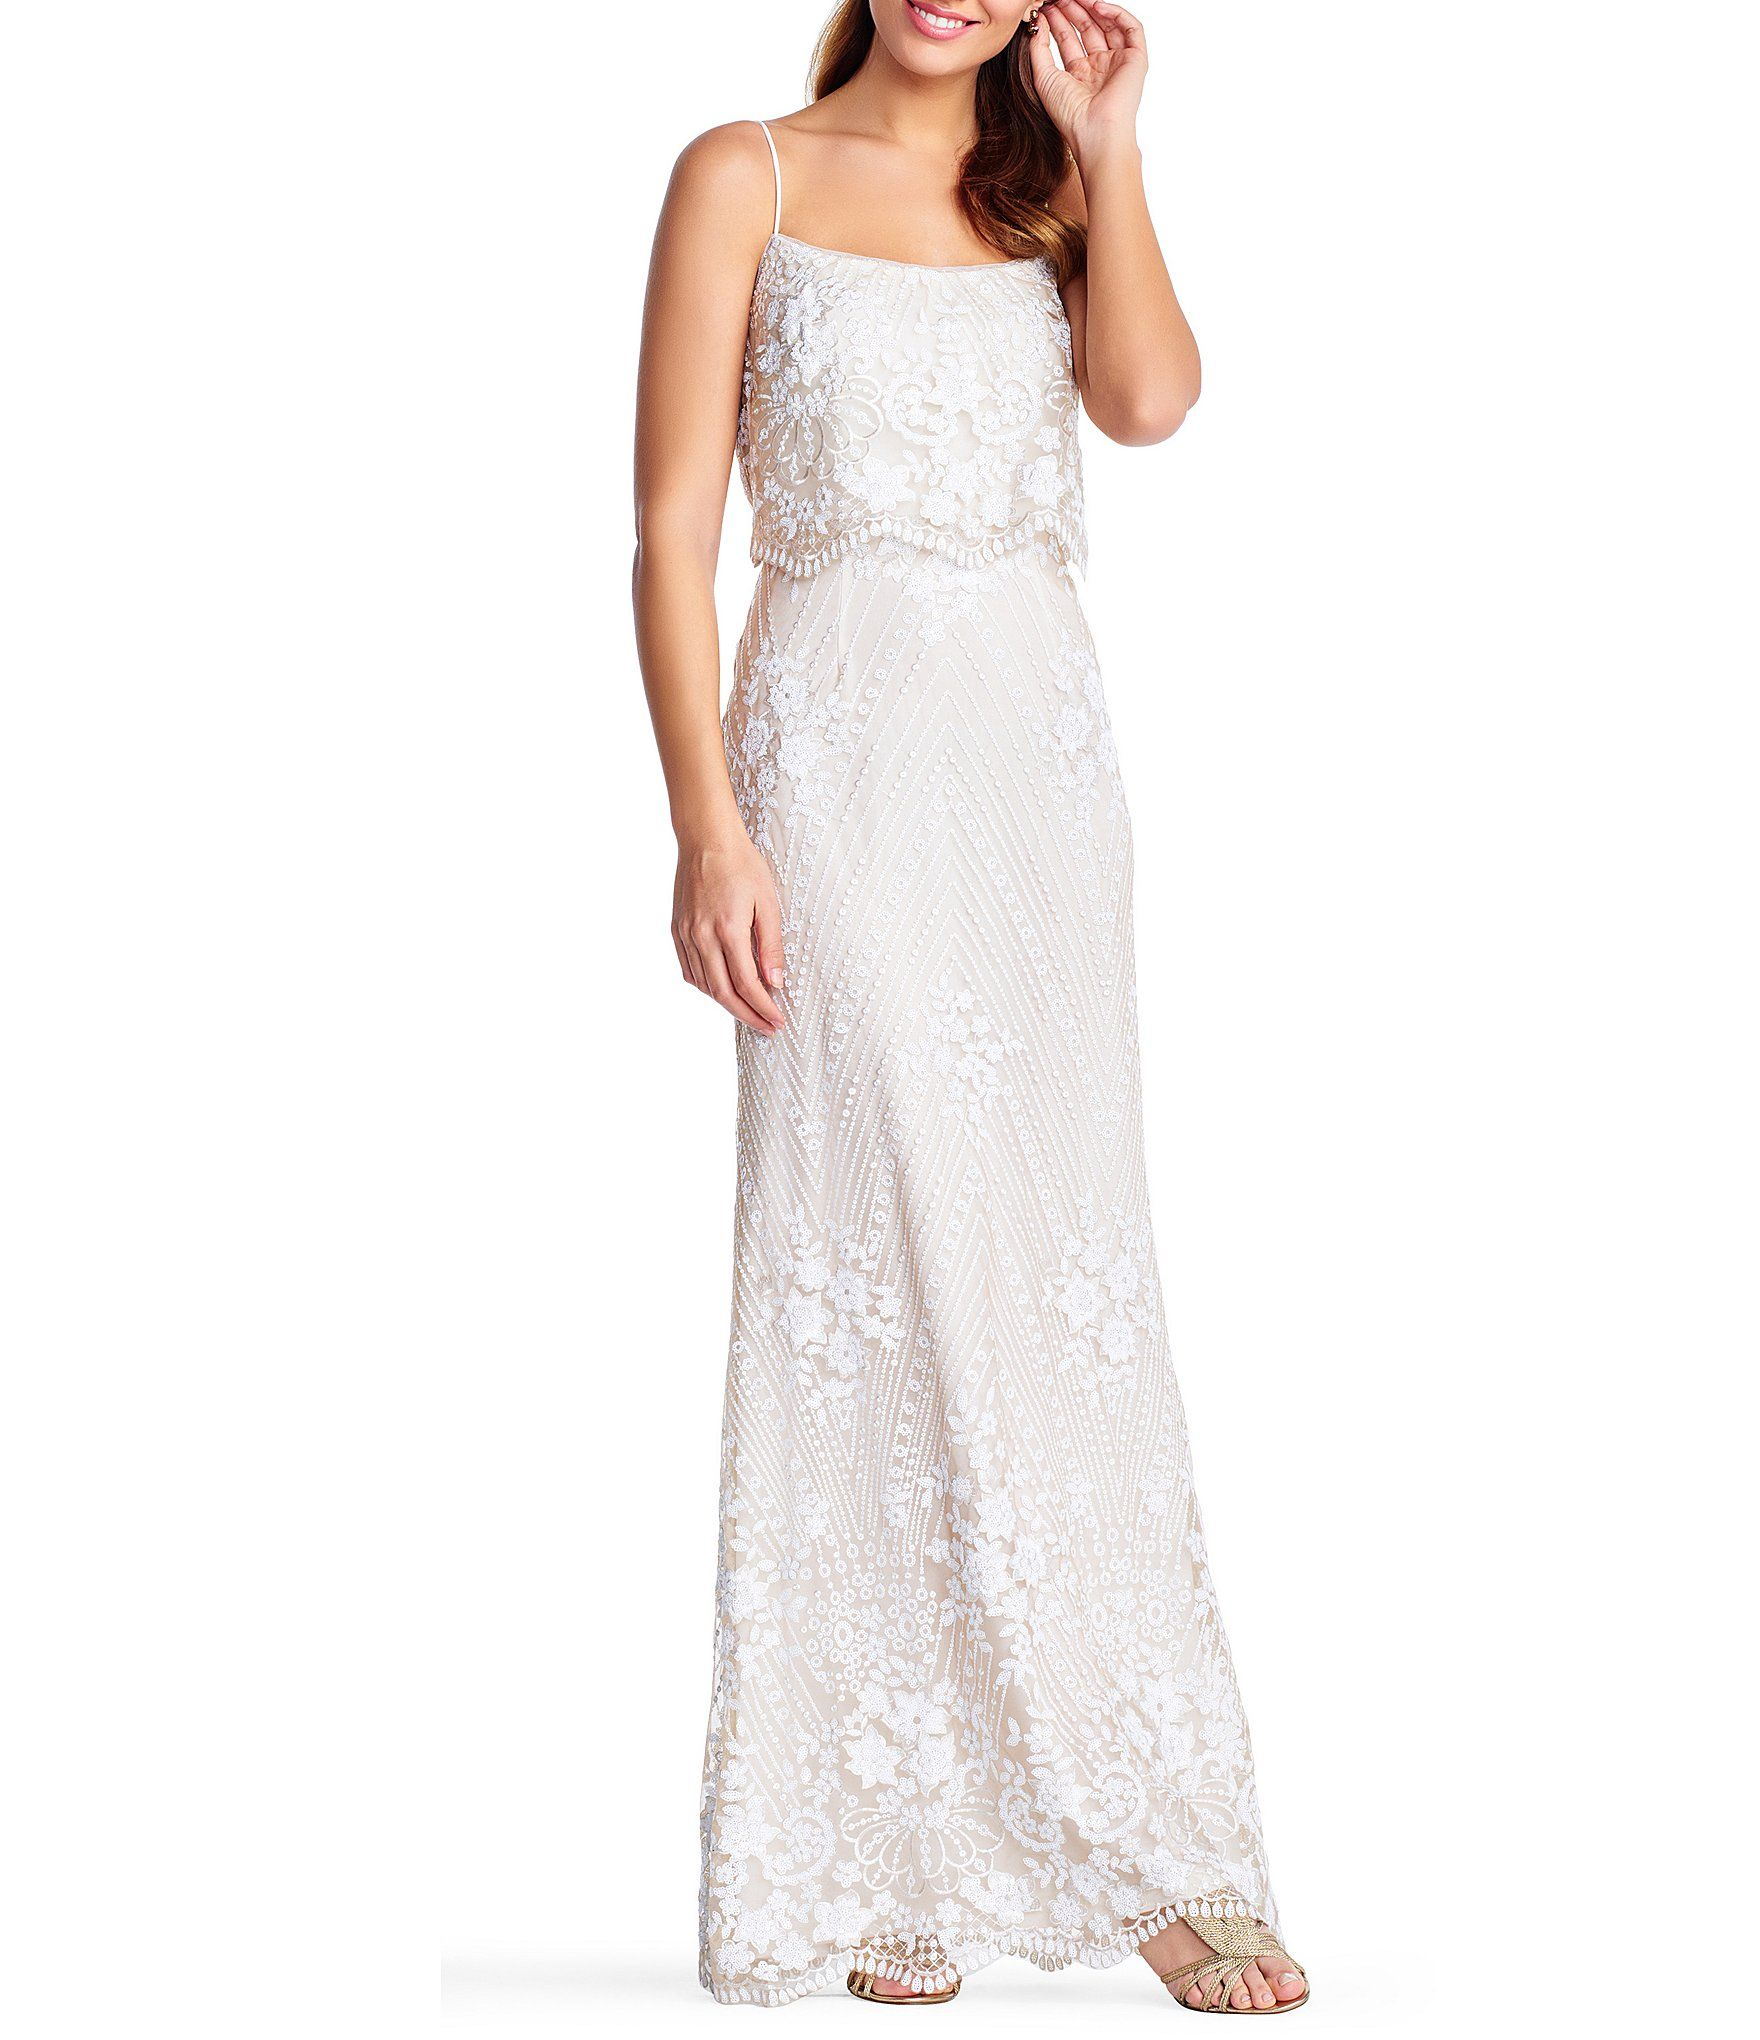 Wedding dresses dillards  Adrianna Papell Lace u Sequin Square Neck Pop Over Gown  Carrie